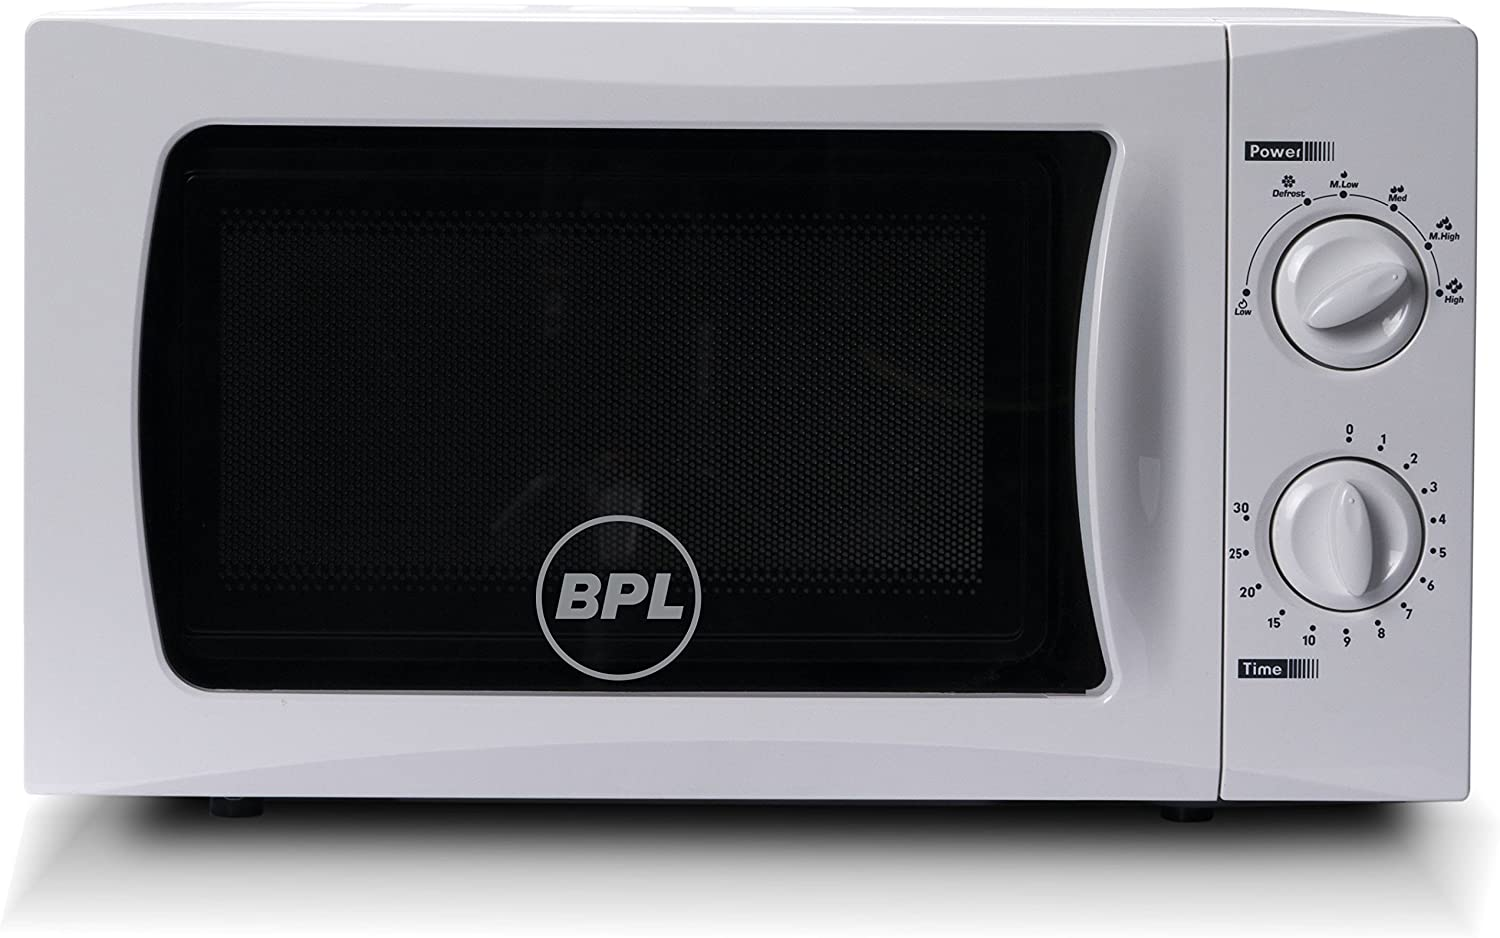 7. BPL 20 L BPLMW20S1G Solo Microwave Oven